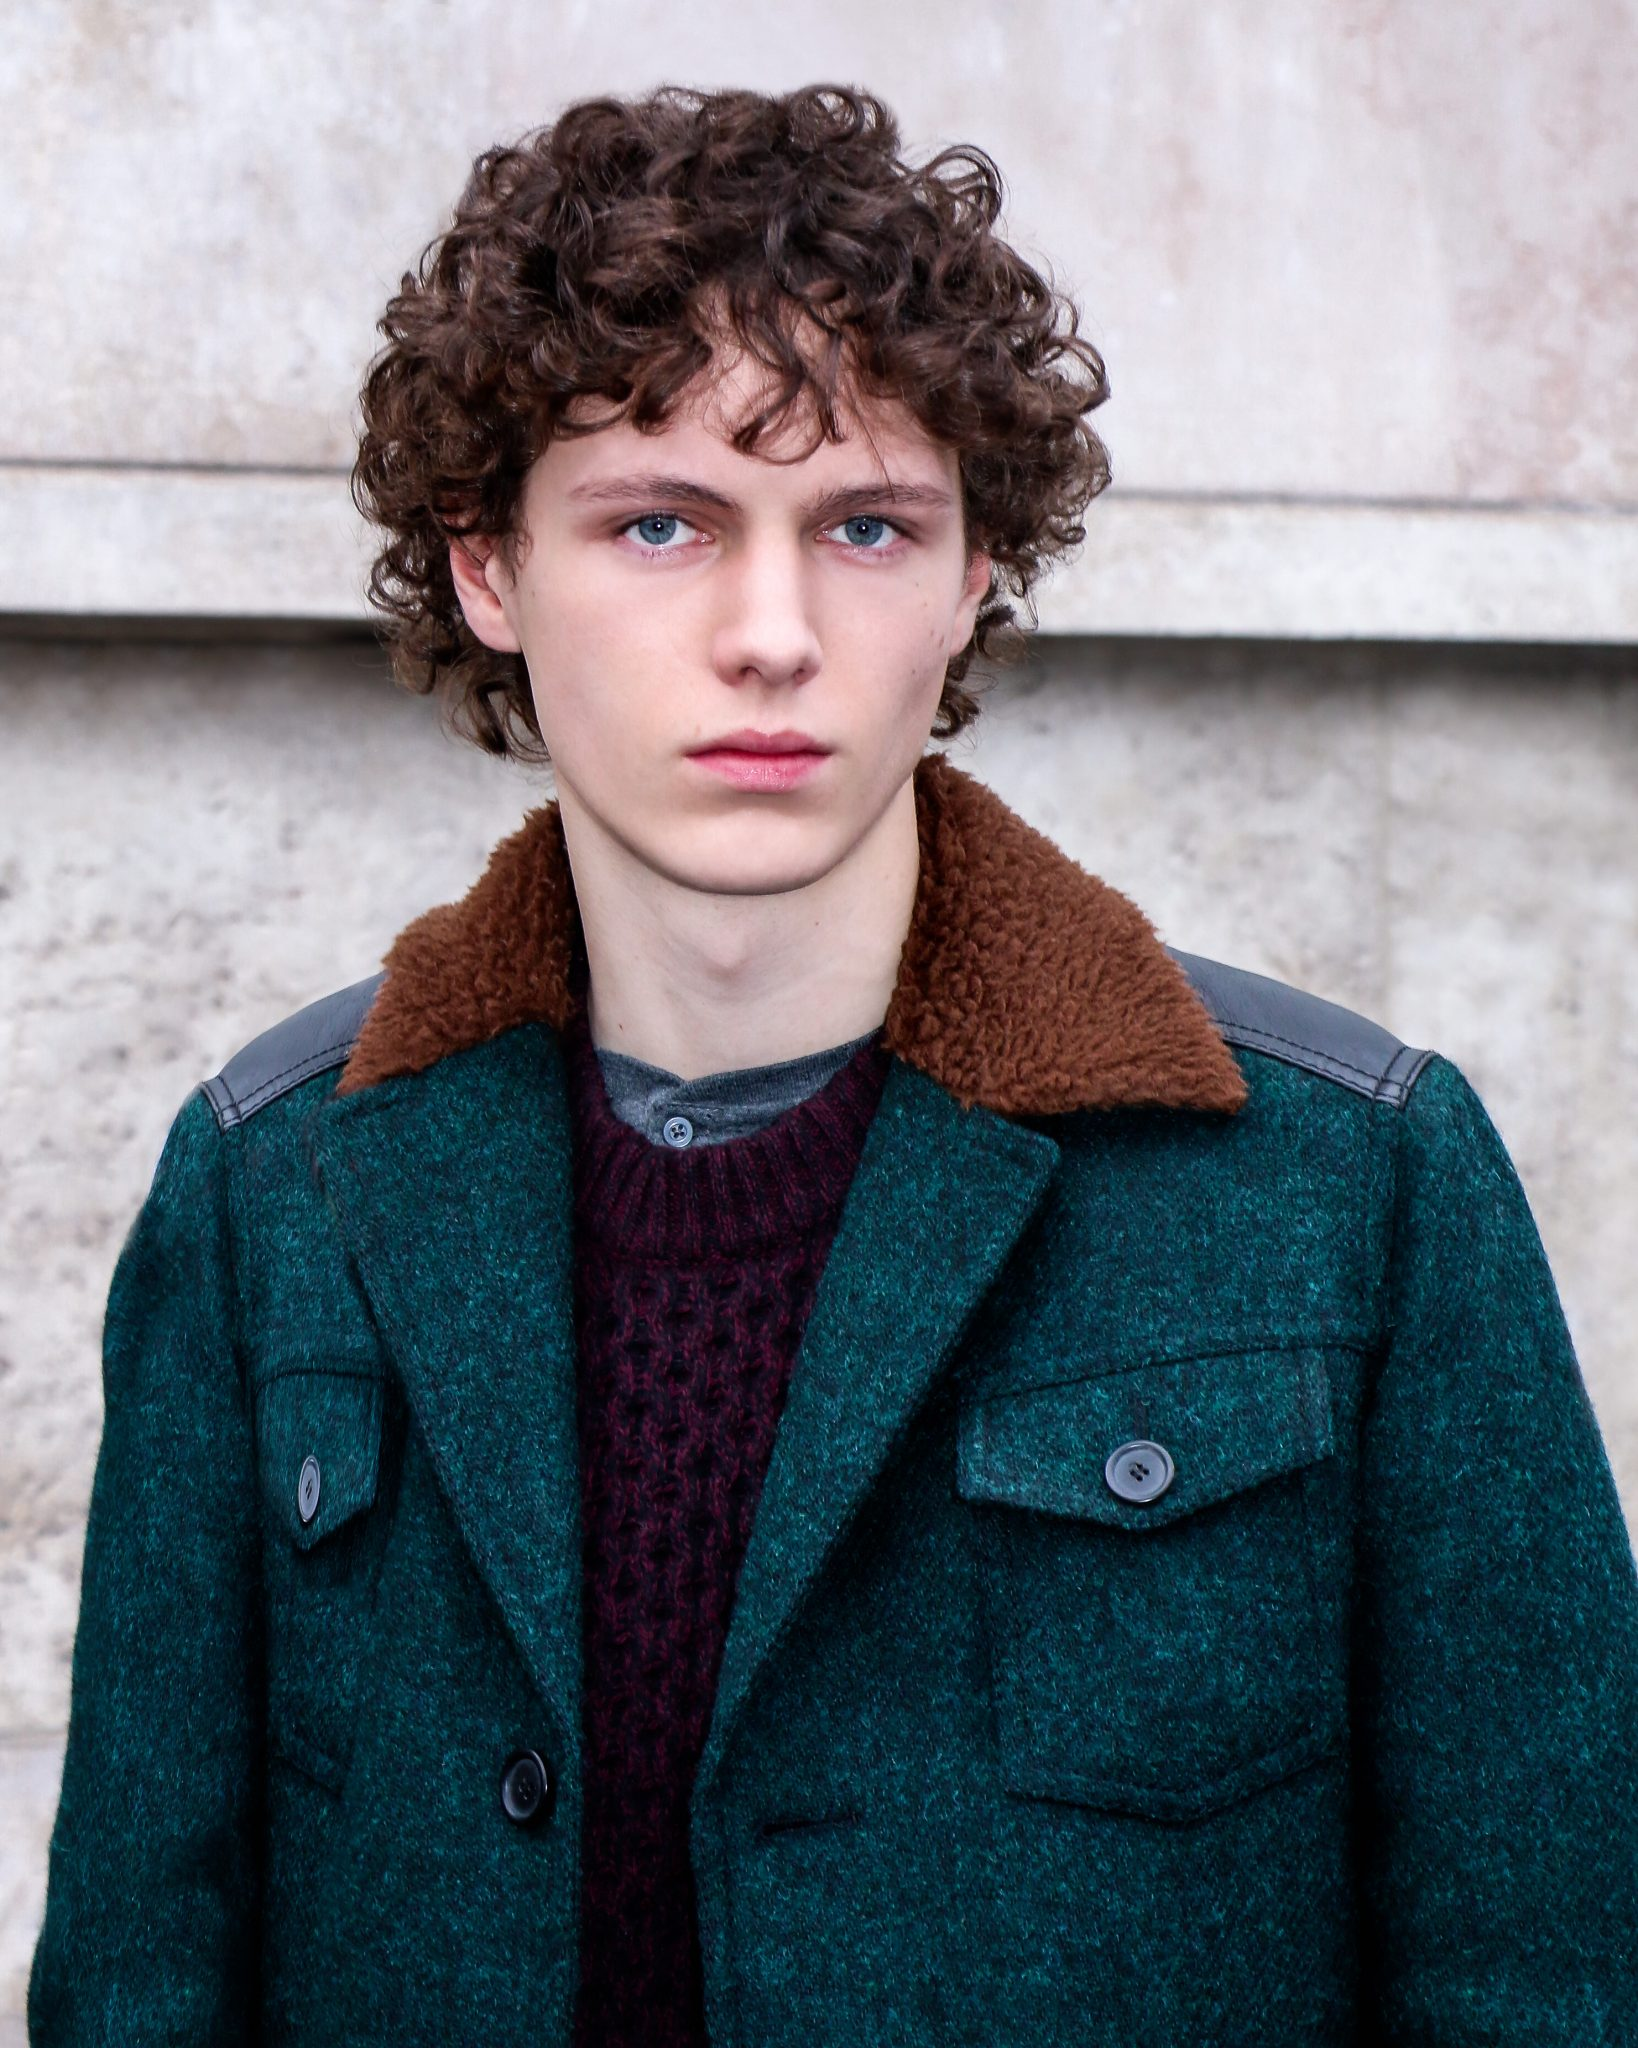 French Photographer Fashion Photography Lanvin Male Model